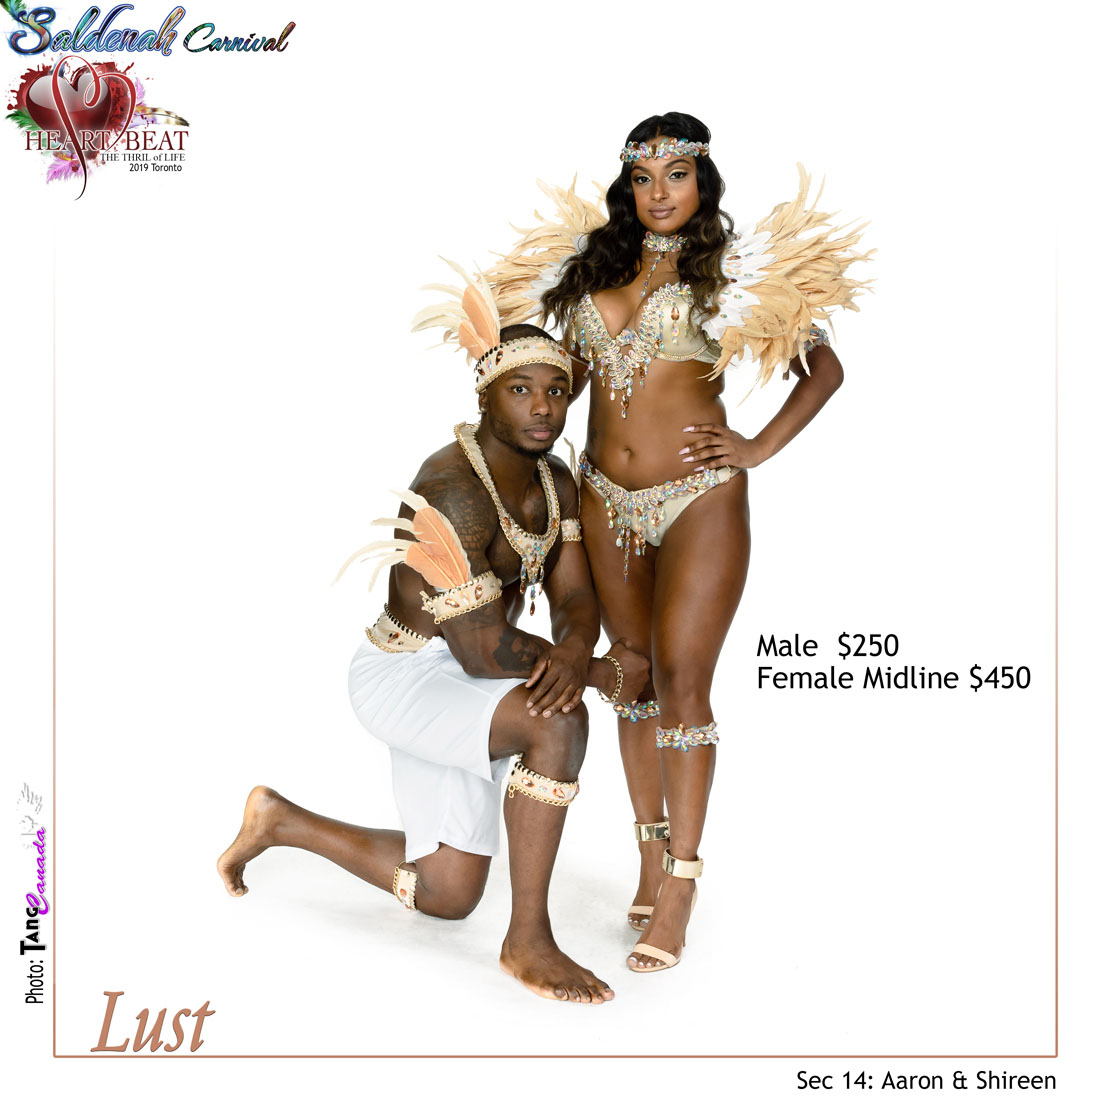 Saldenah Carnival Section 14 Lust